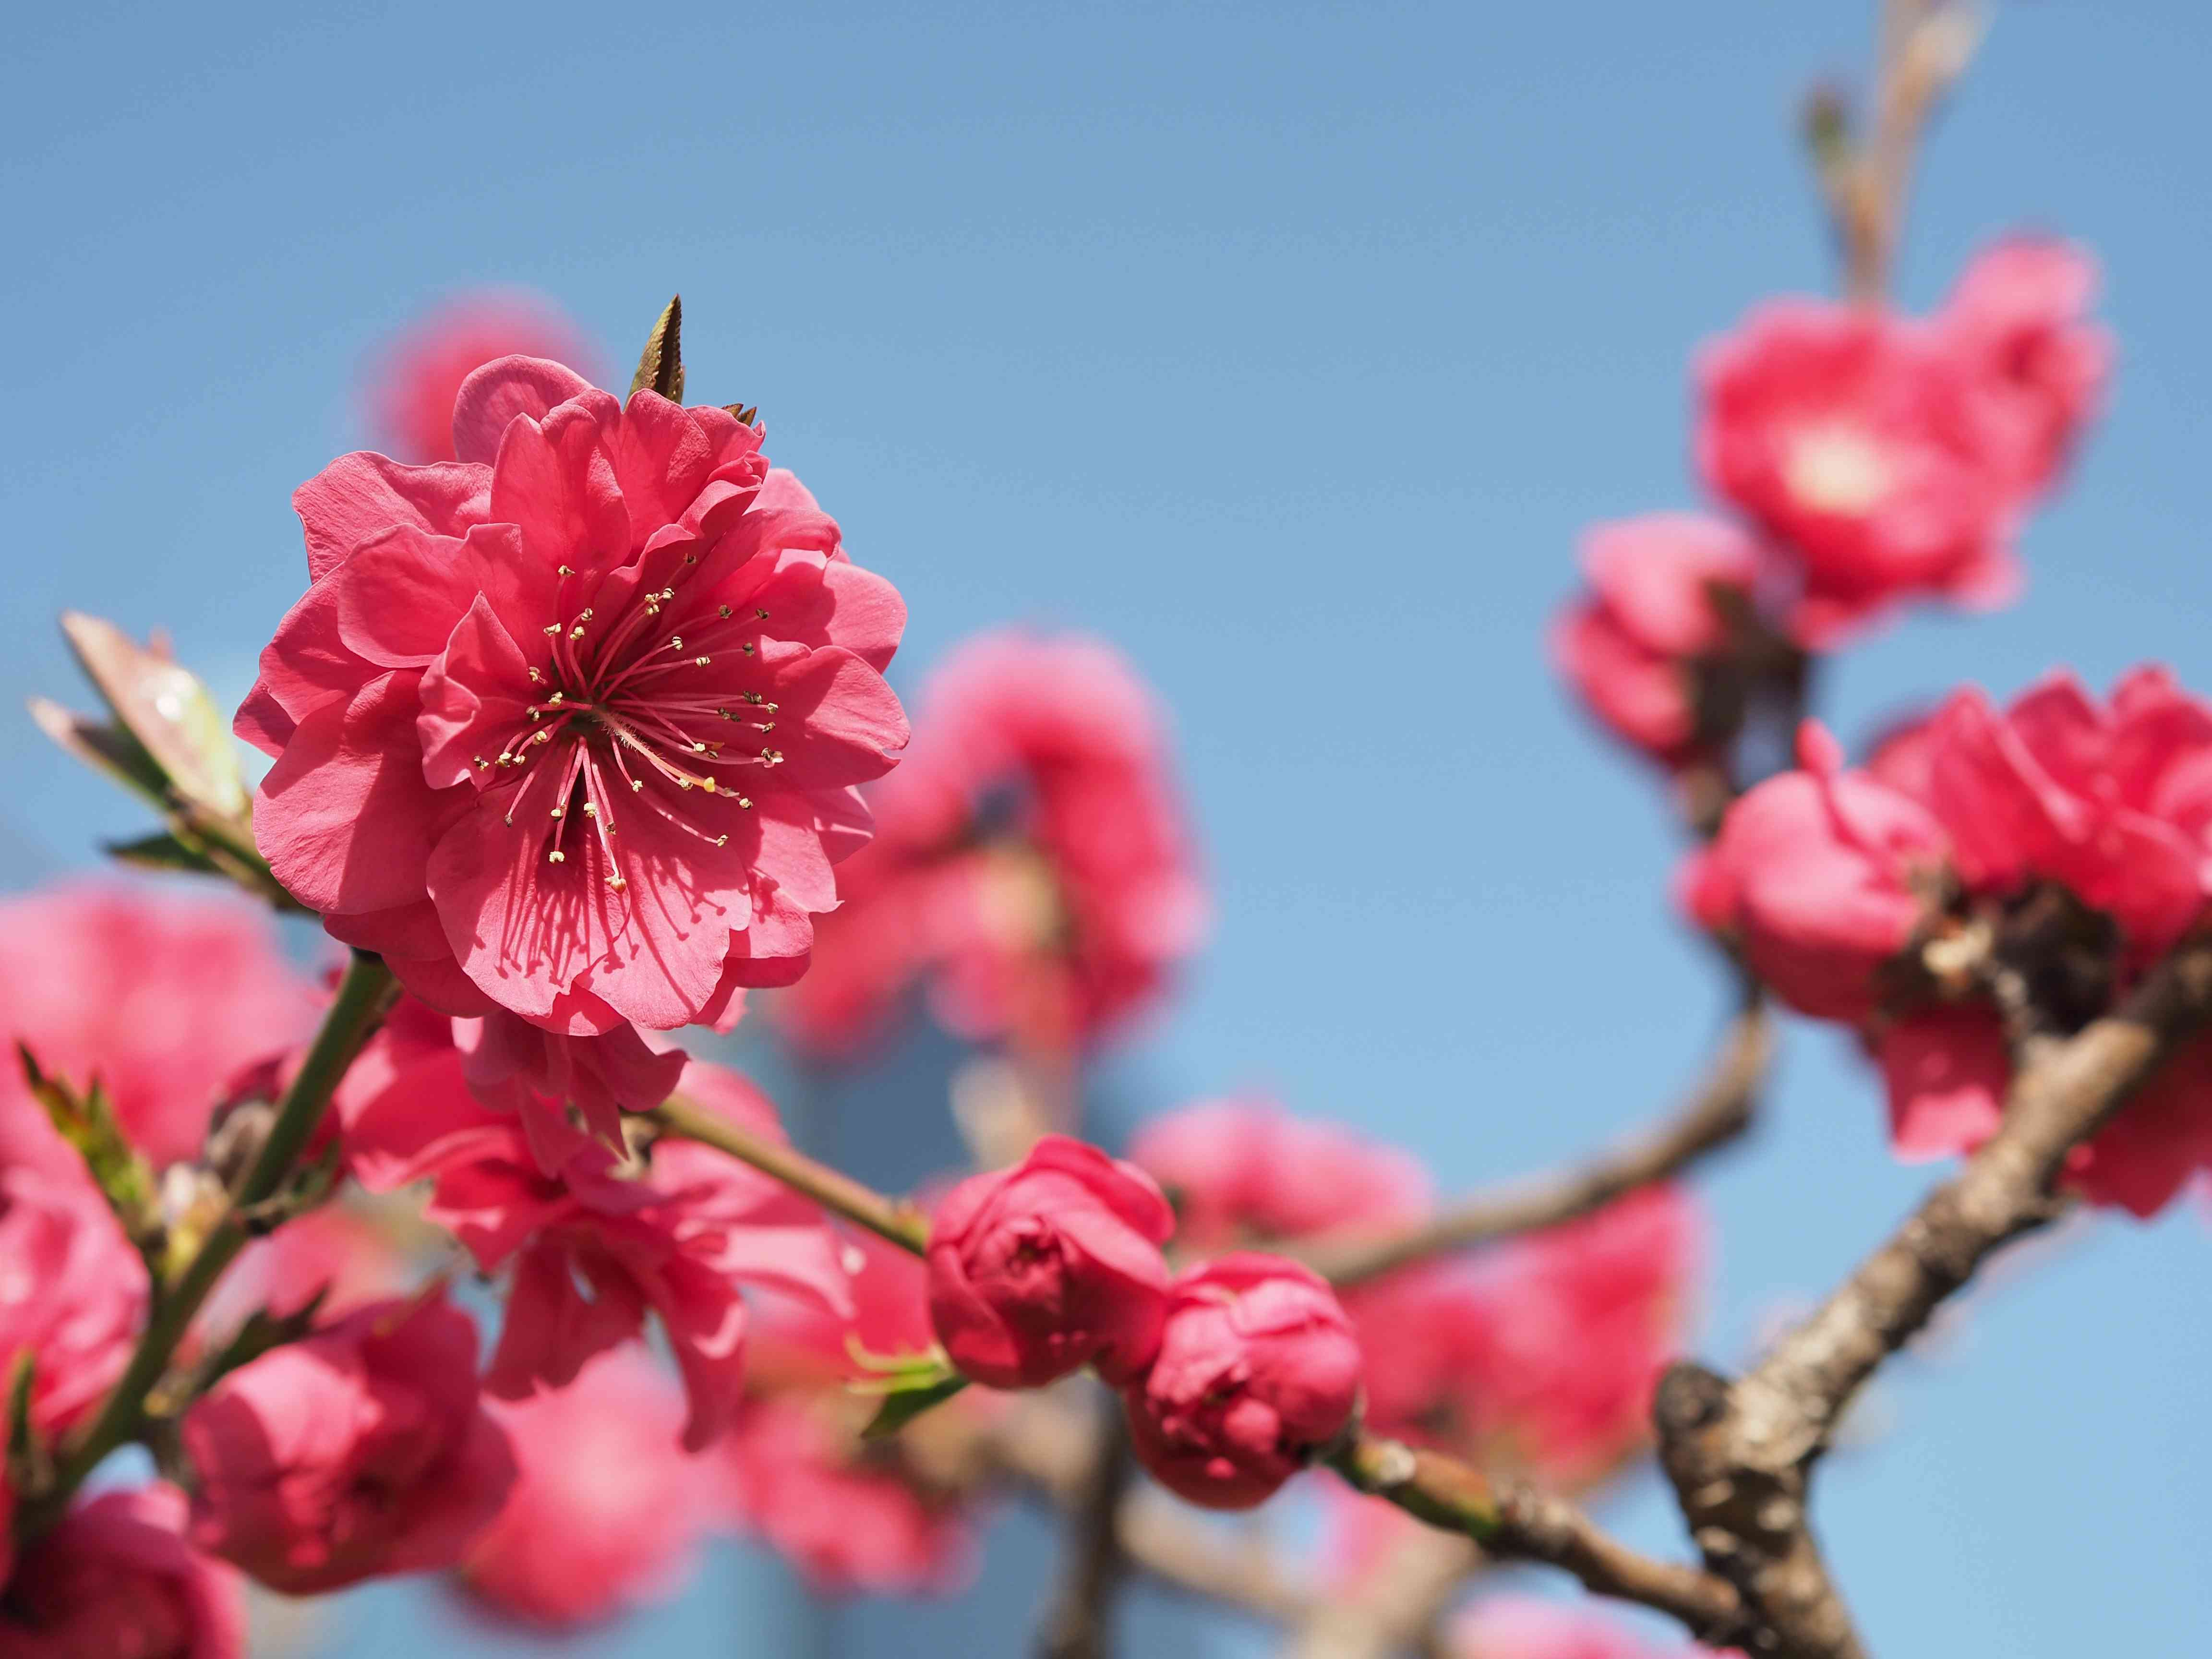 Plum blossoms blooming cleanly